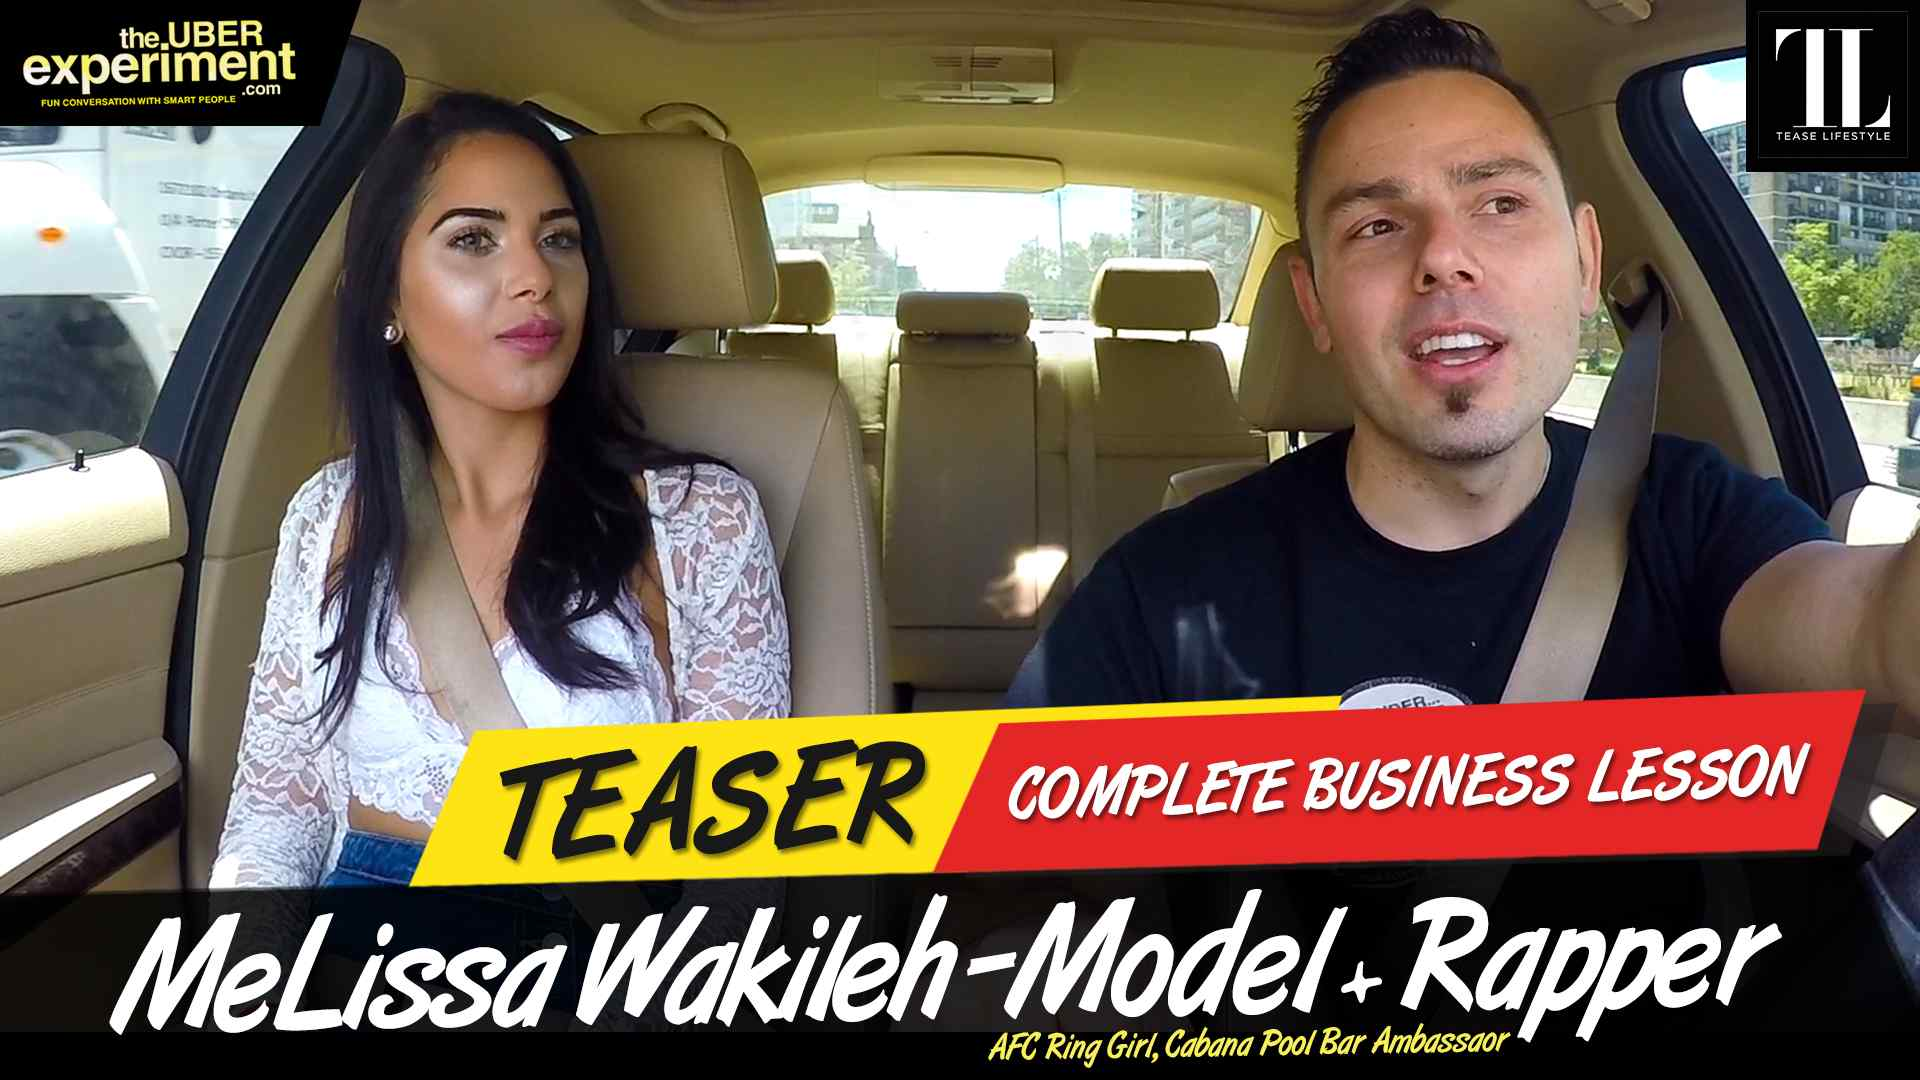 COMPLETE BUSINESS LESSON - Model, AFC Girl MELISSA WAKILEH rides The Uber Experiment Reality Show